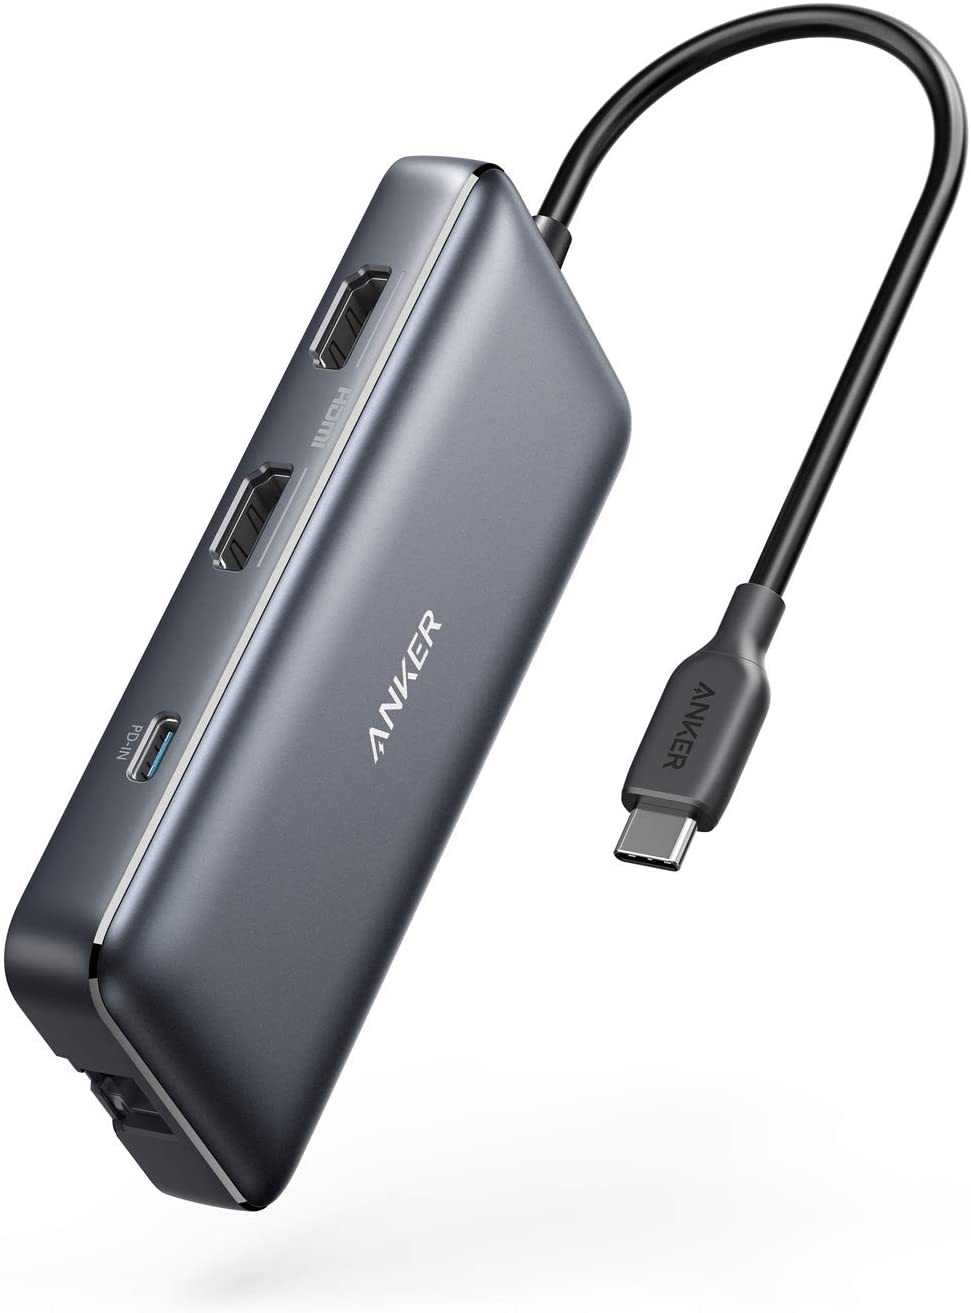 Anker Powerexpand 8 In 1 Usb C Adapter